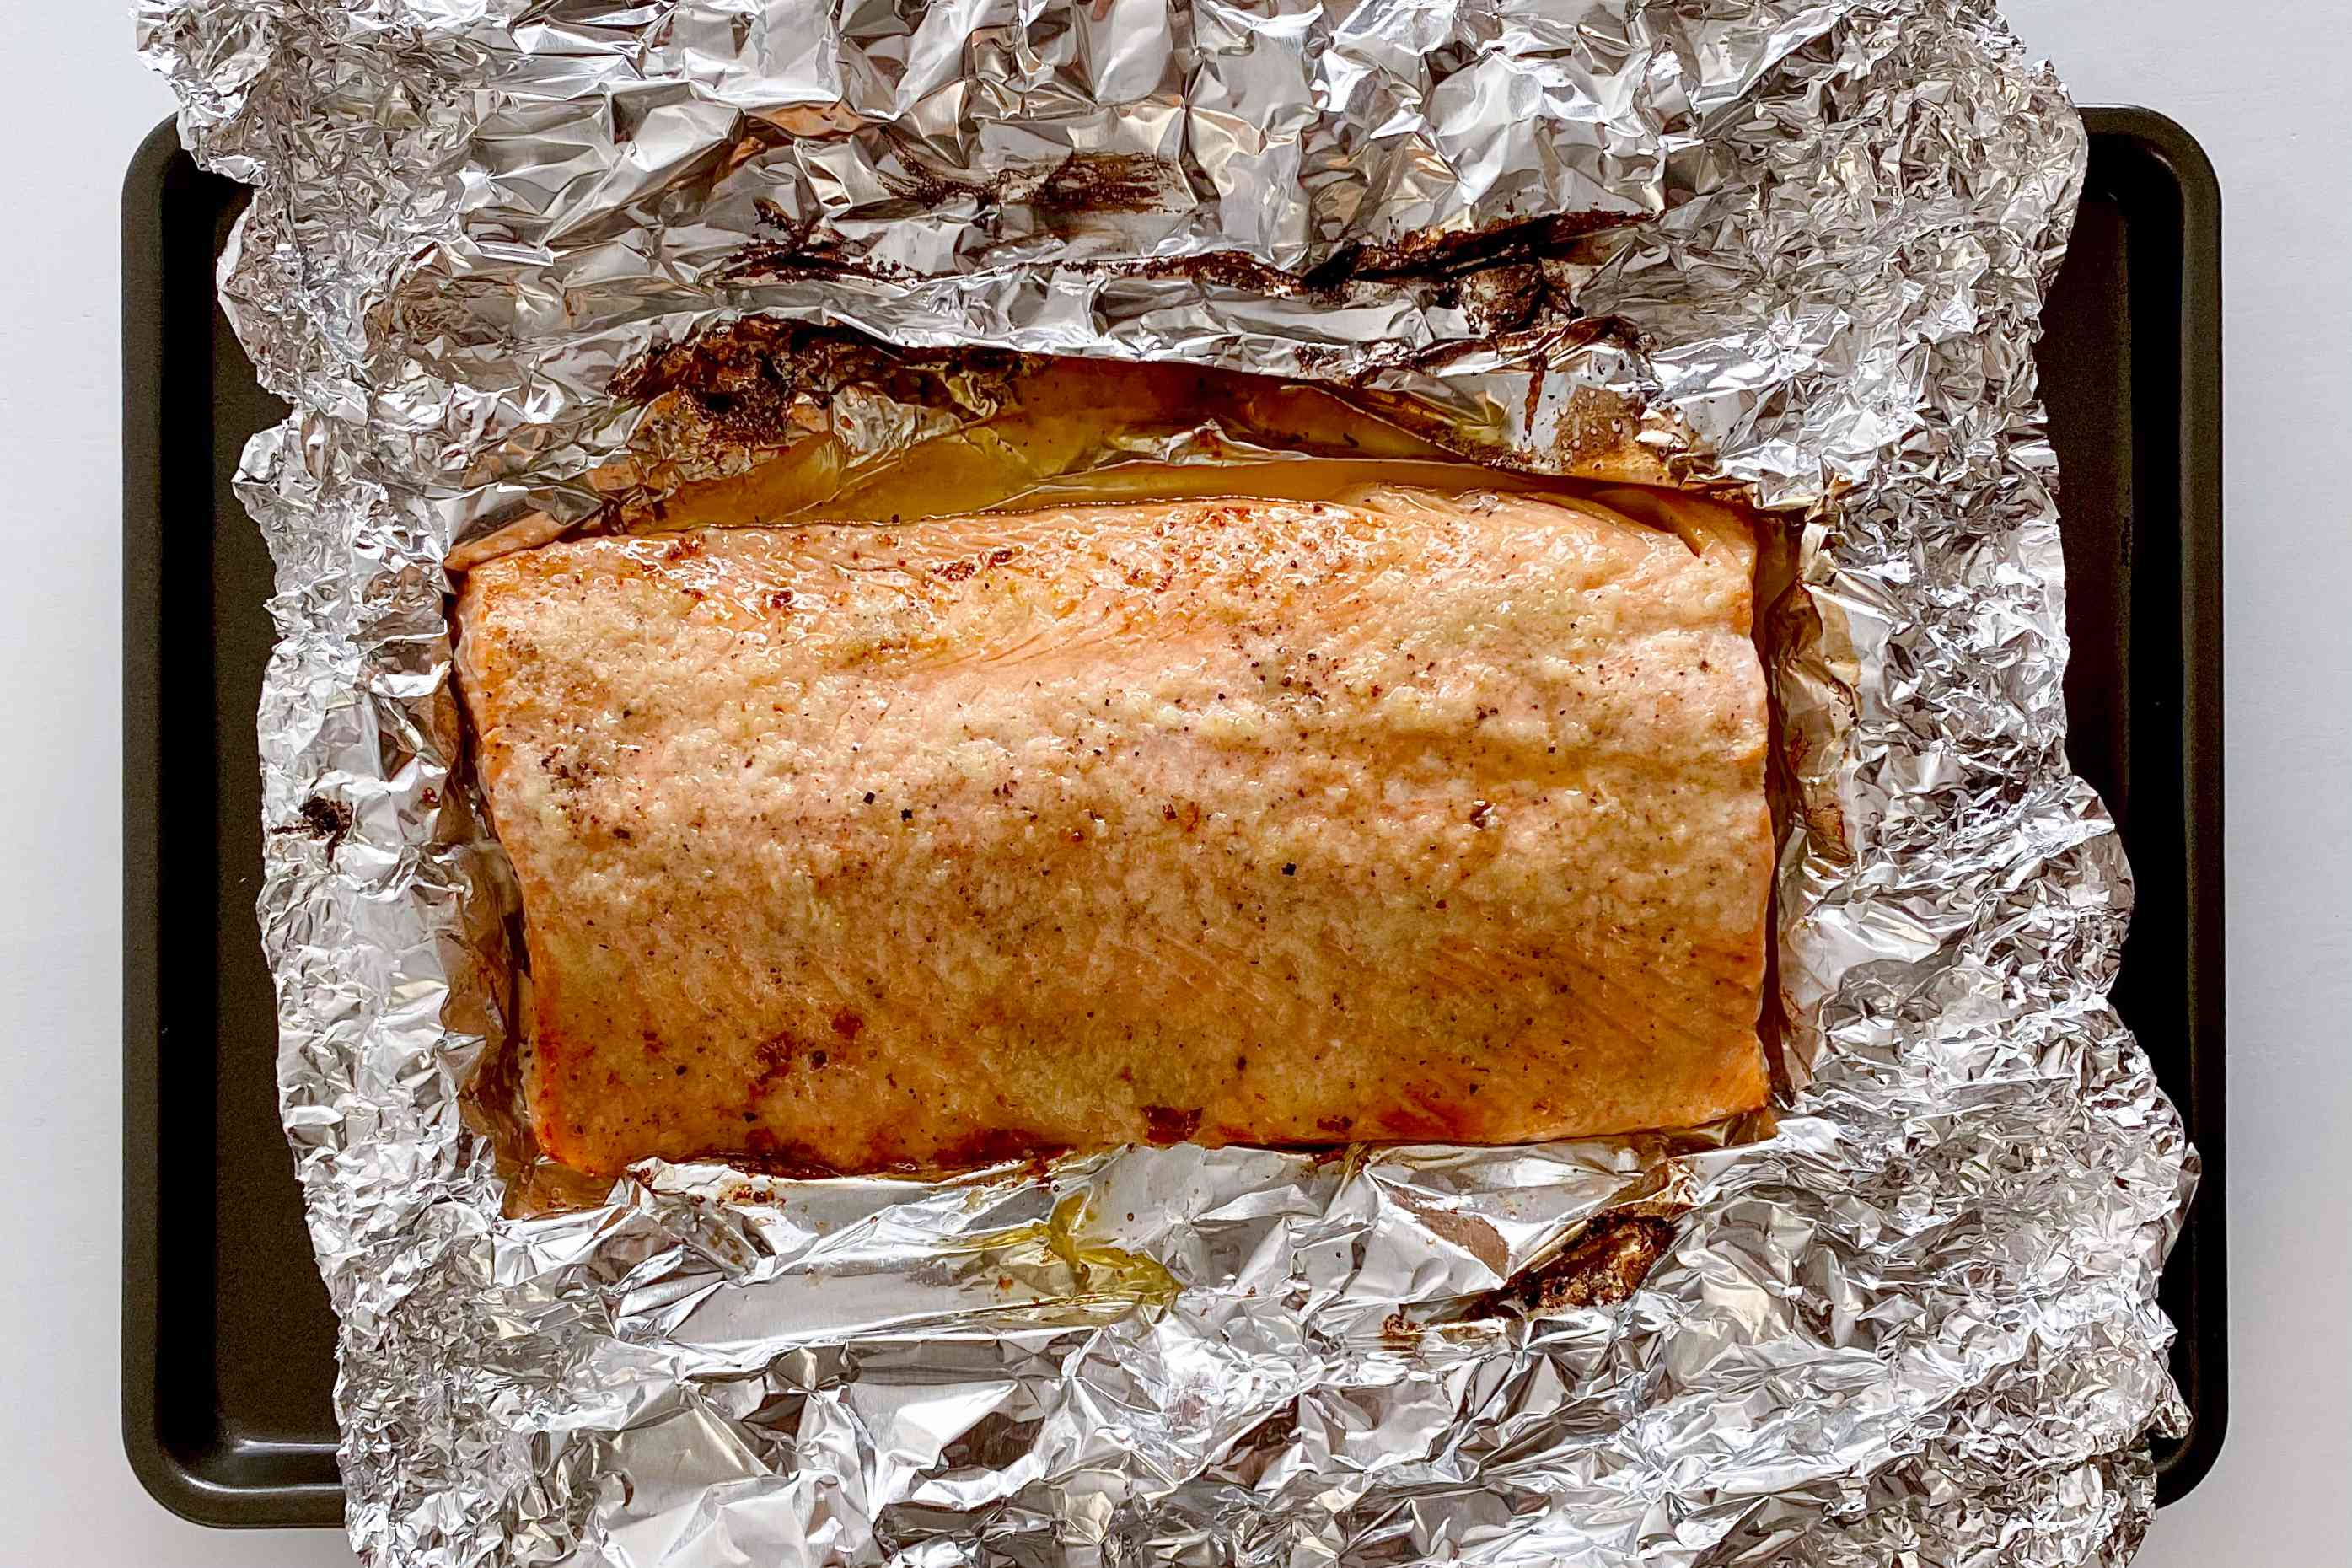 Honey Garlic Butter Roasted Salmon out of the oven and resting in the foil it was baked in.